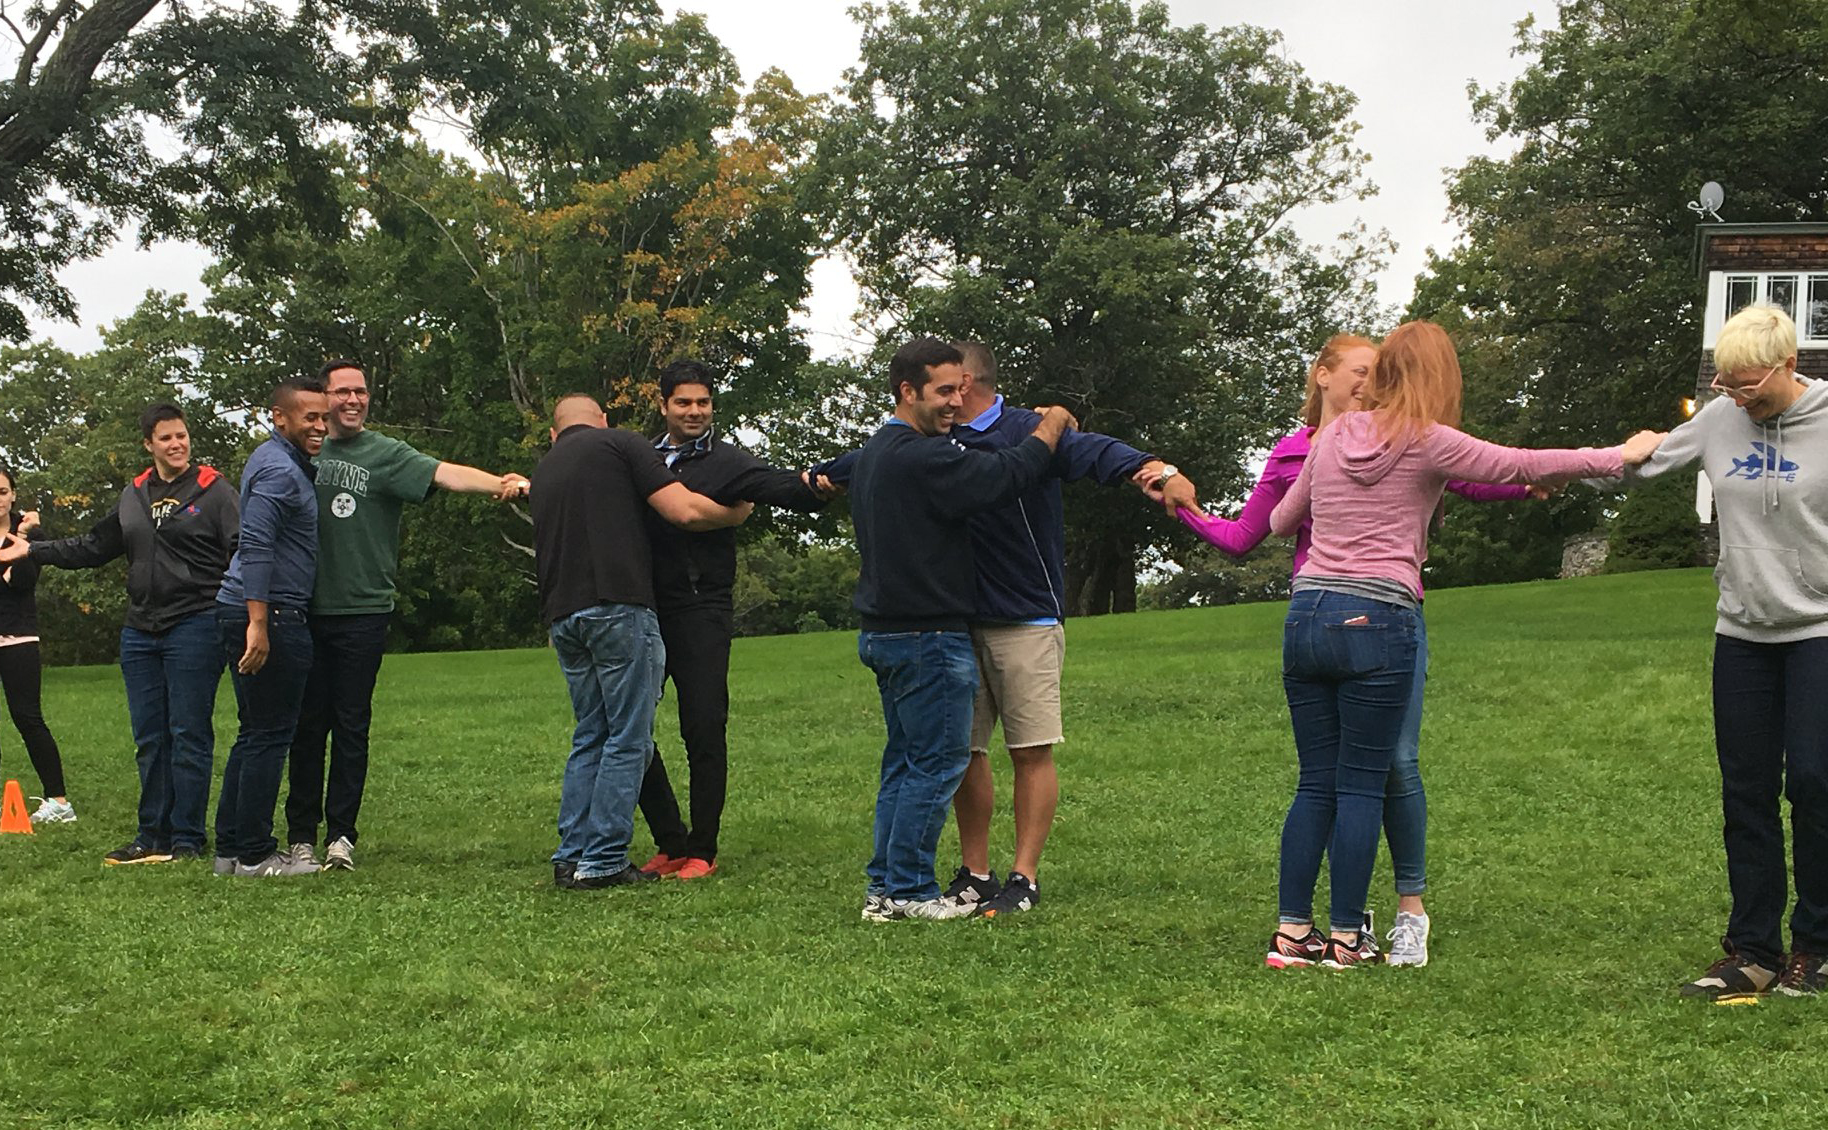 What to Expect From Action-Based Teambuilding